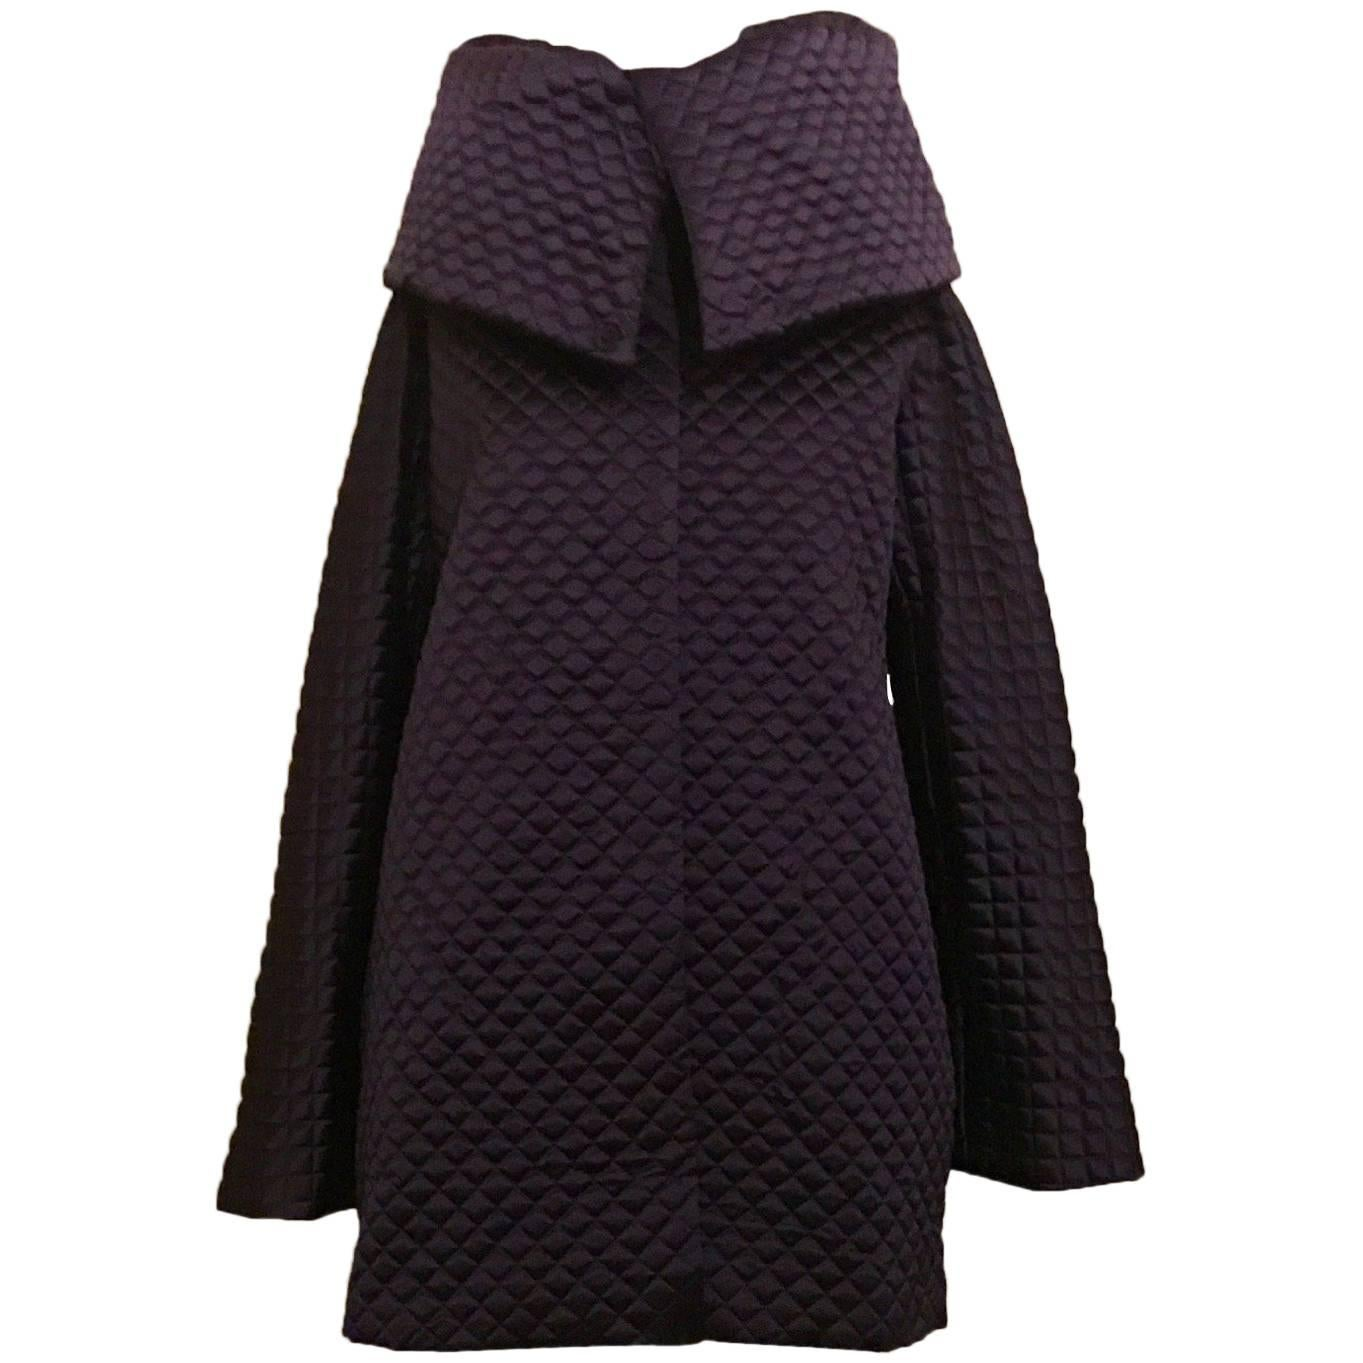 New 2007 Alexander McQueen Runway Purple Quilted High Collar Jacket Coat